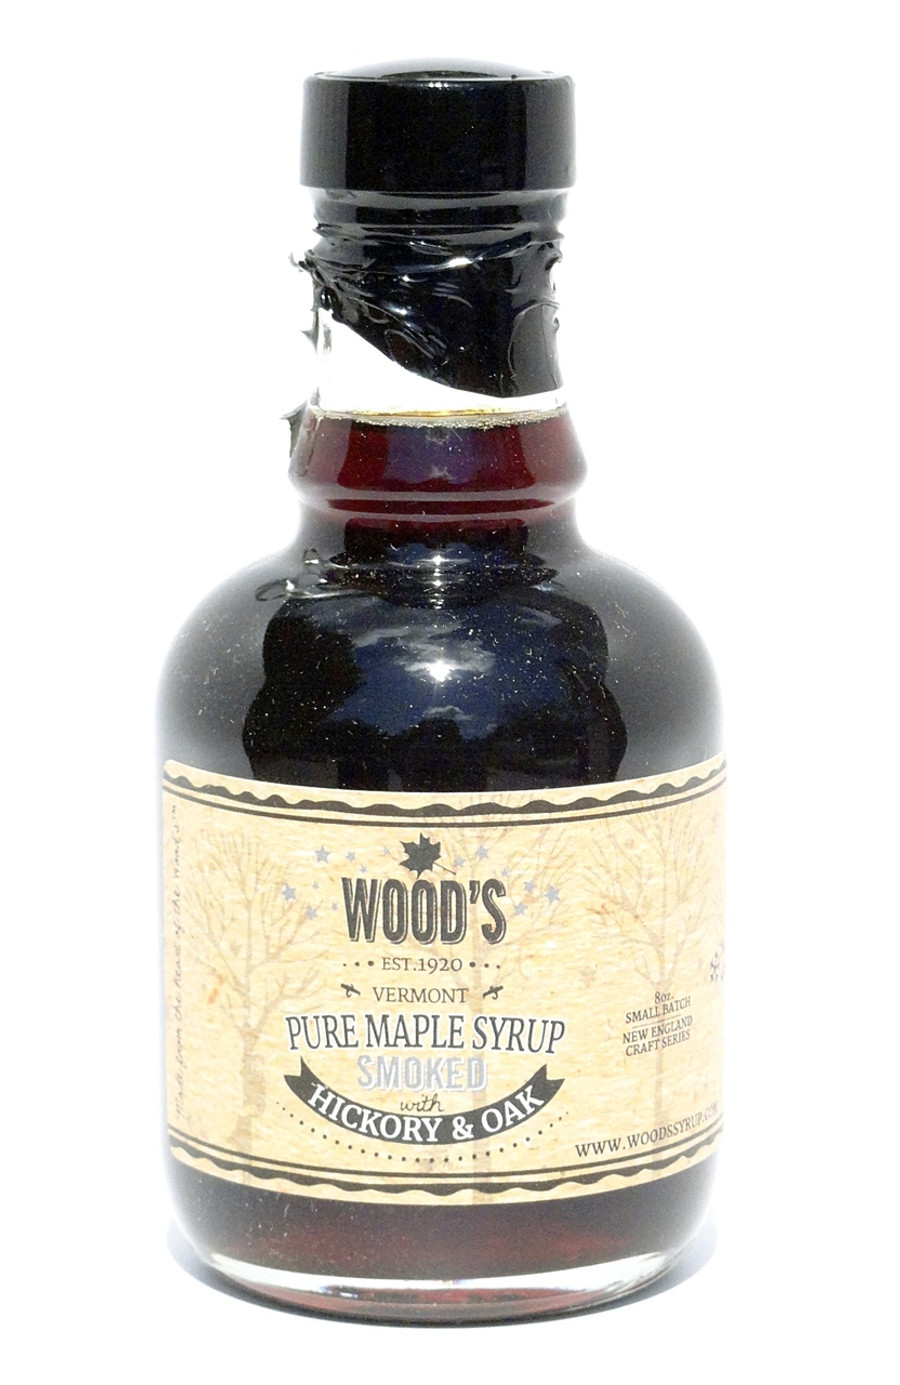 Wood's Smoked Maple Syrup